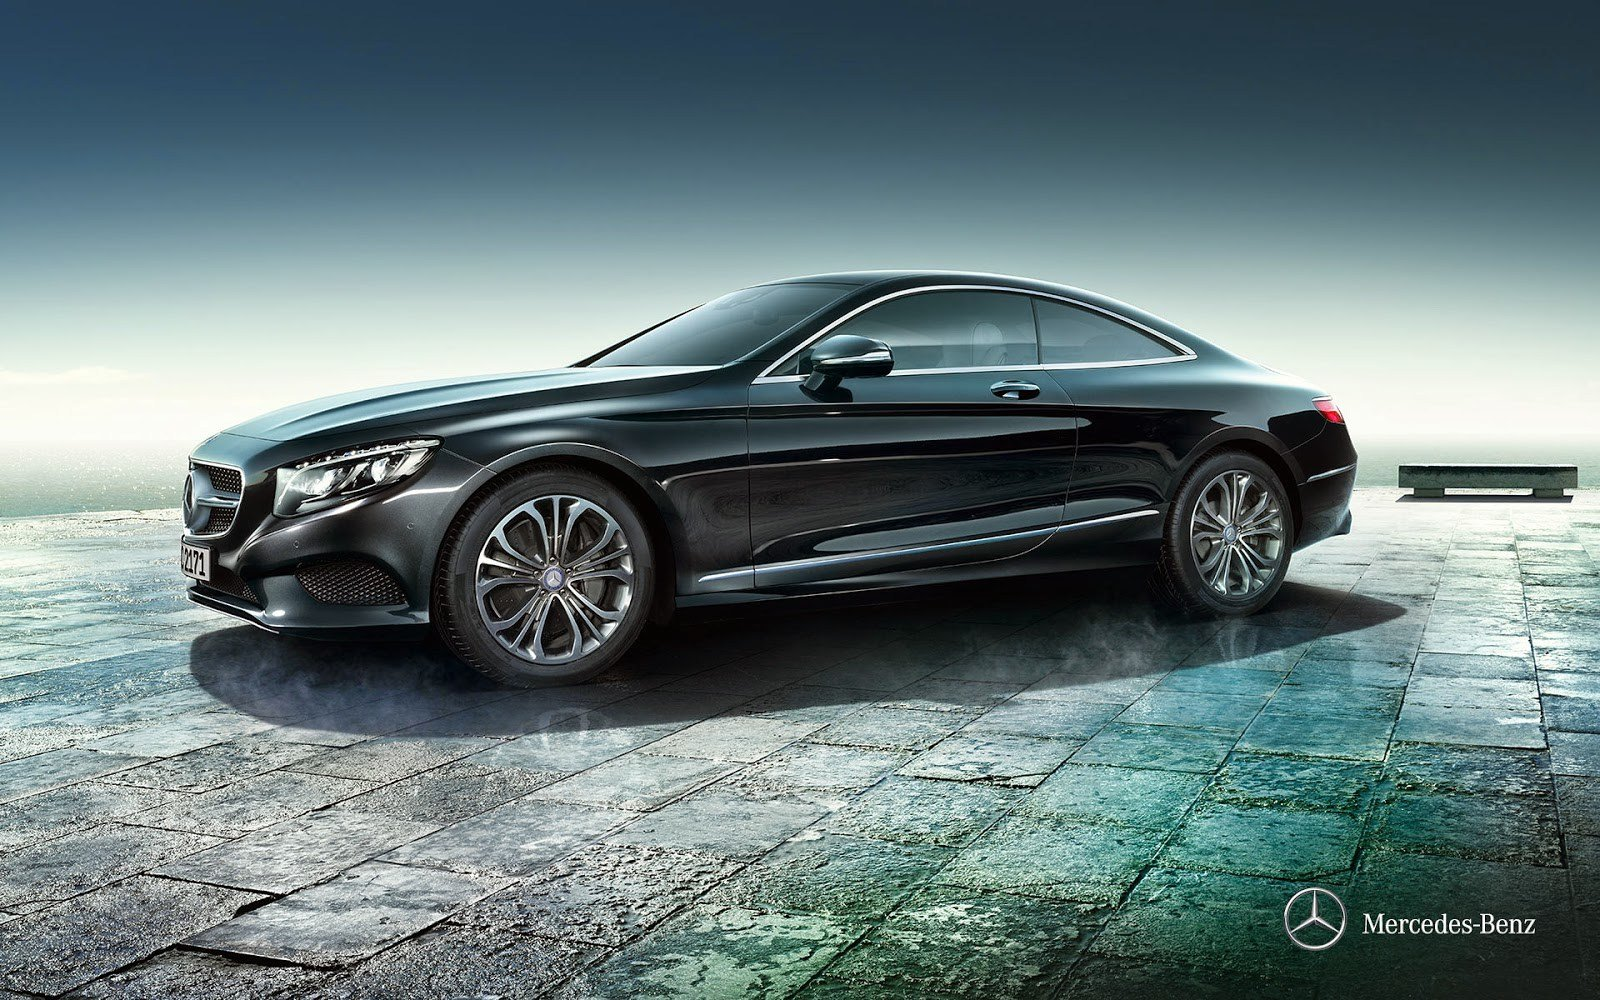 Latest Mercedes Benz Hd Wallpapers Wallpapersafari Free Download